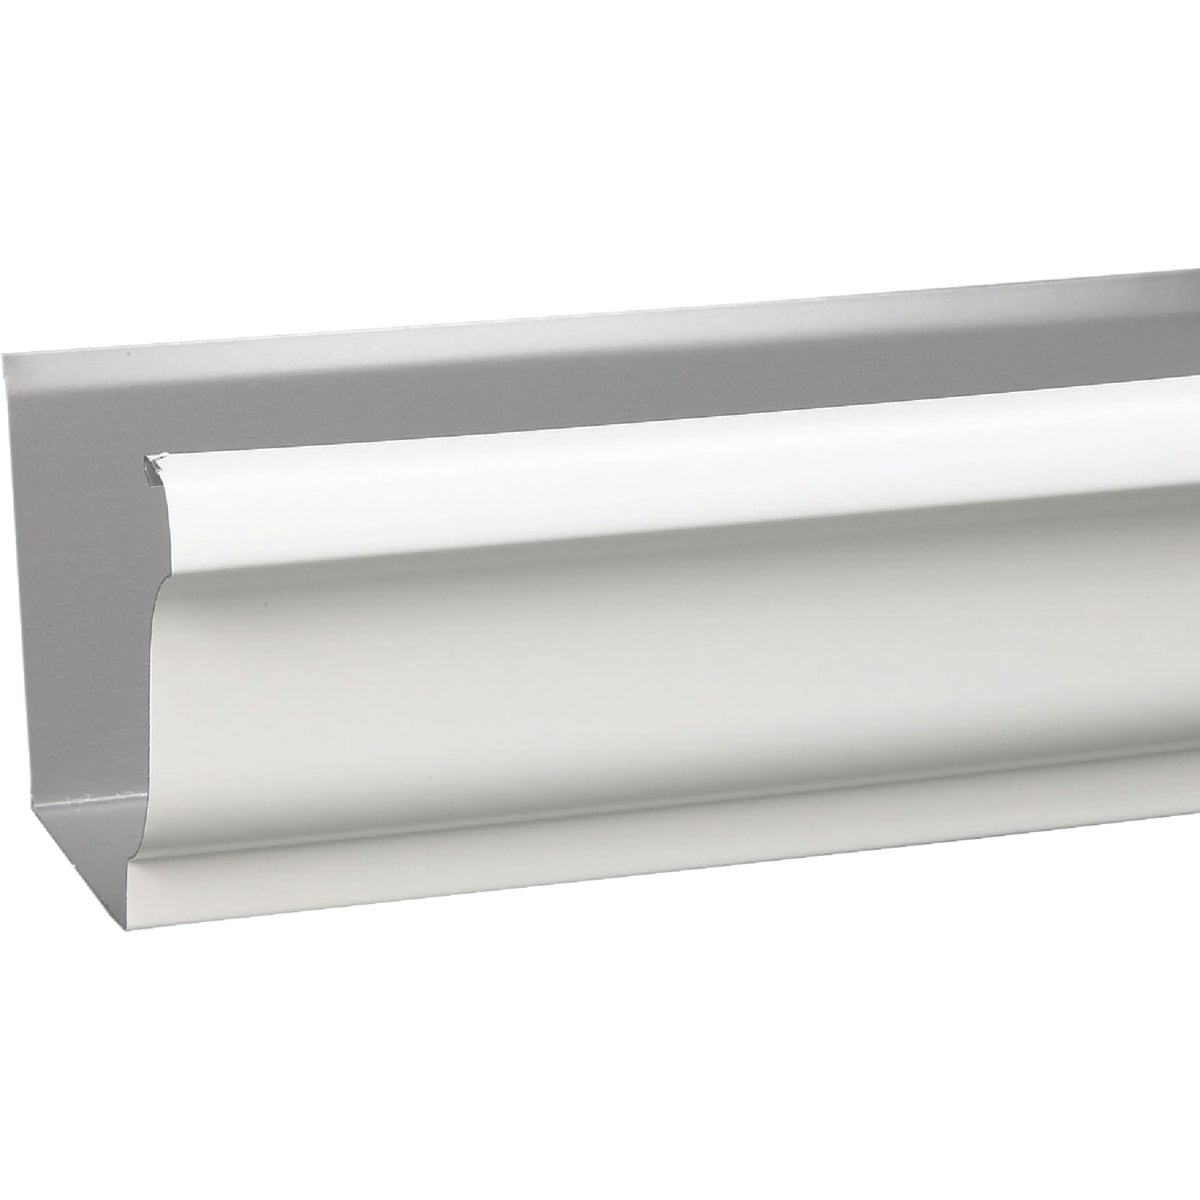 "4"" WHITE STEEL GUTTER - 1800700120 by Amerimax Home Prod"